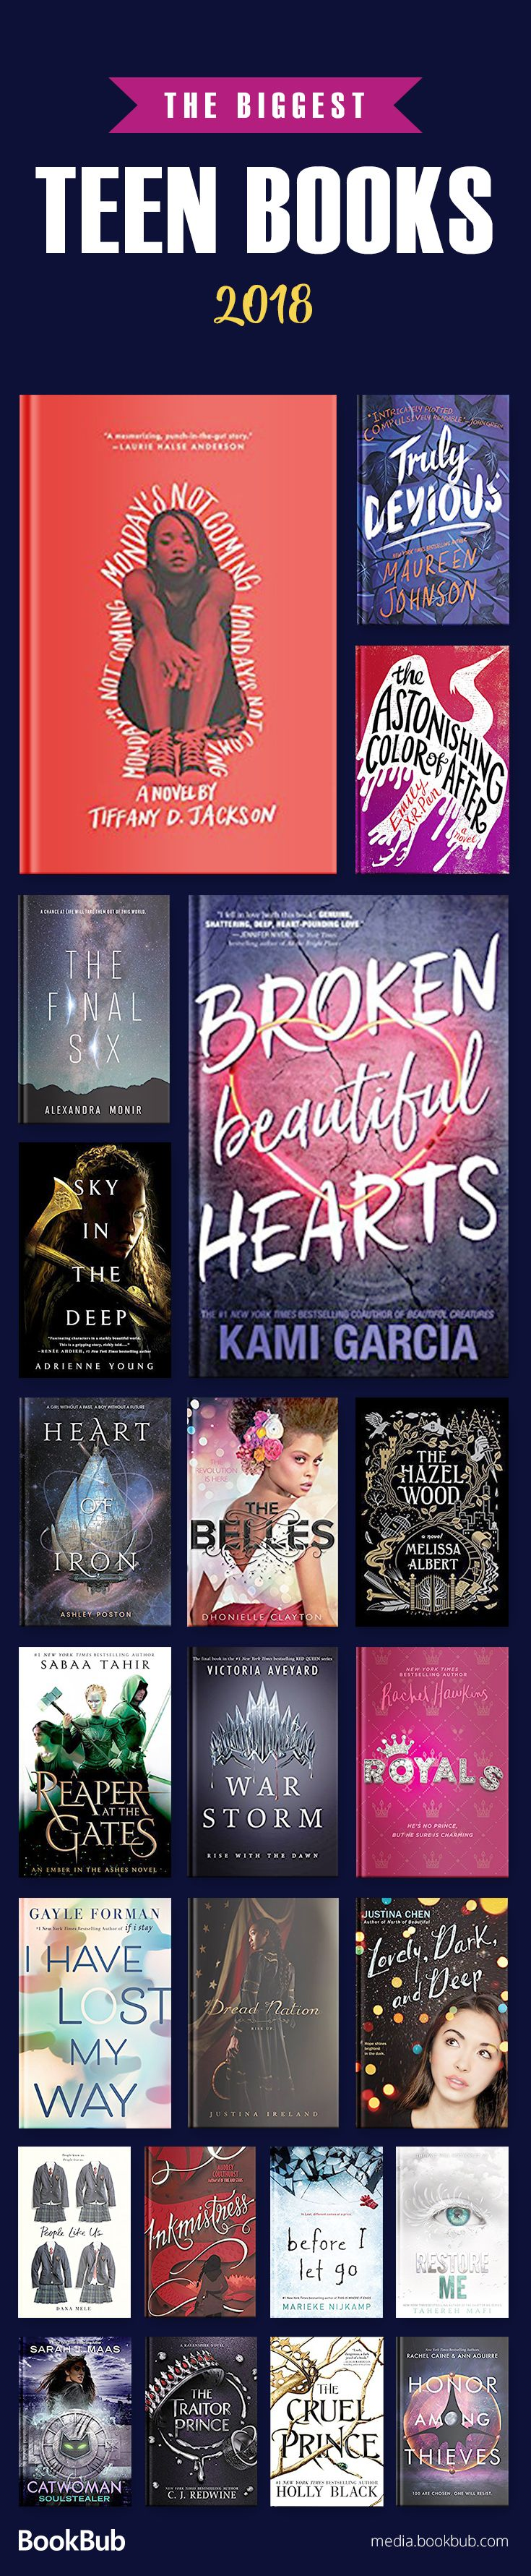 Young adult books to read in 2018, including teen books for girls and for boys across fantasy, dystopian, romance, and other genres. Find your great new teen book or teen series!